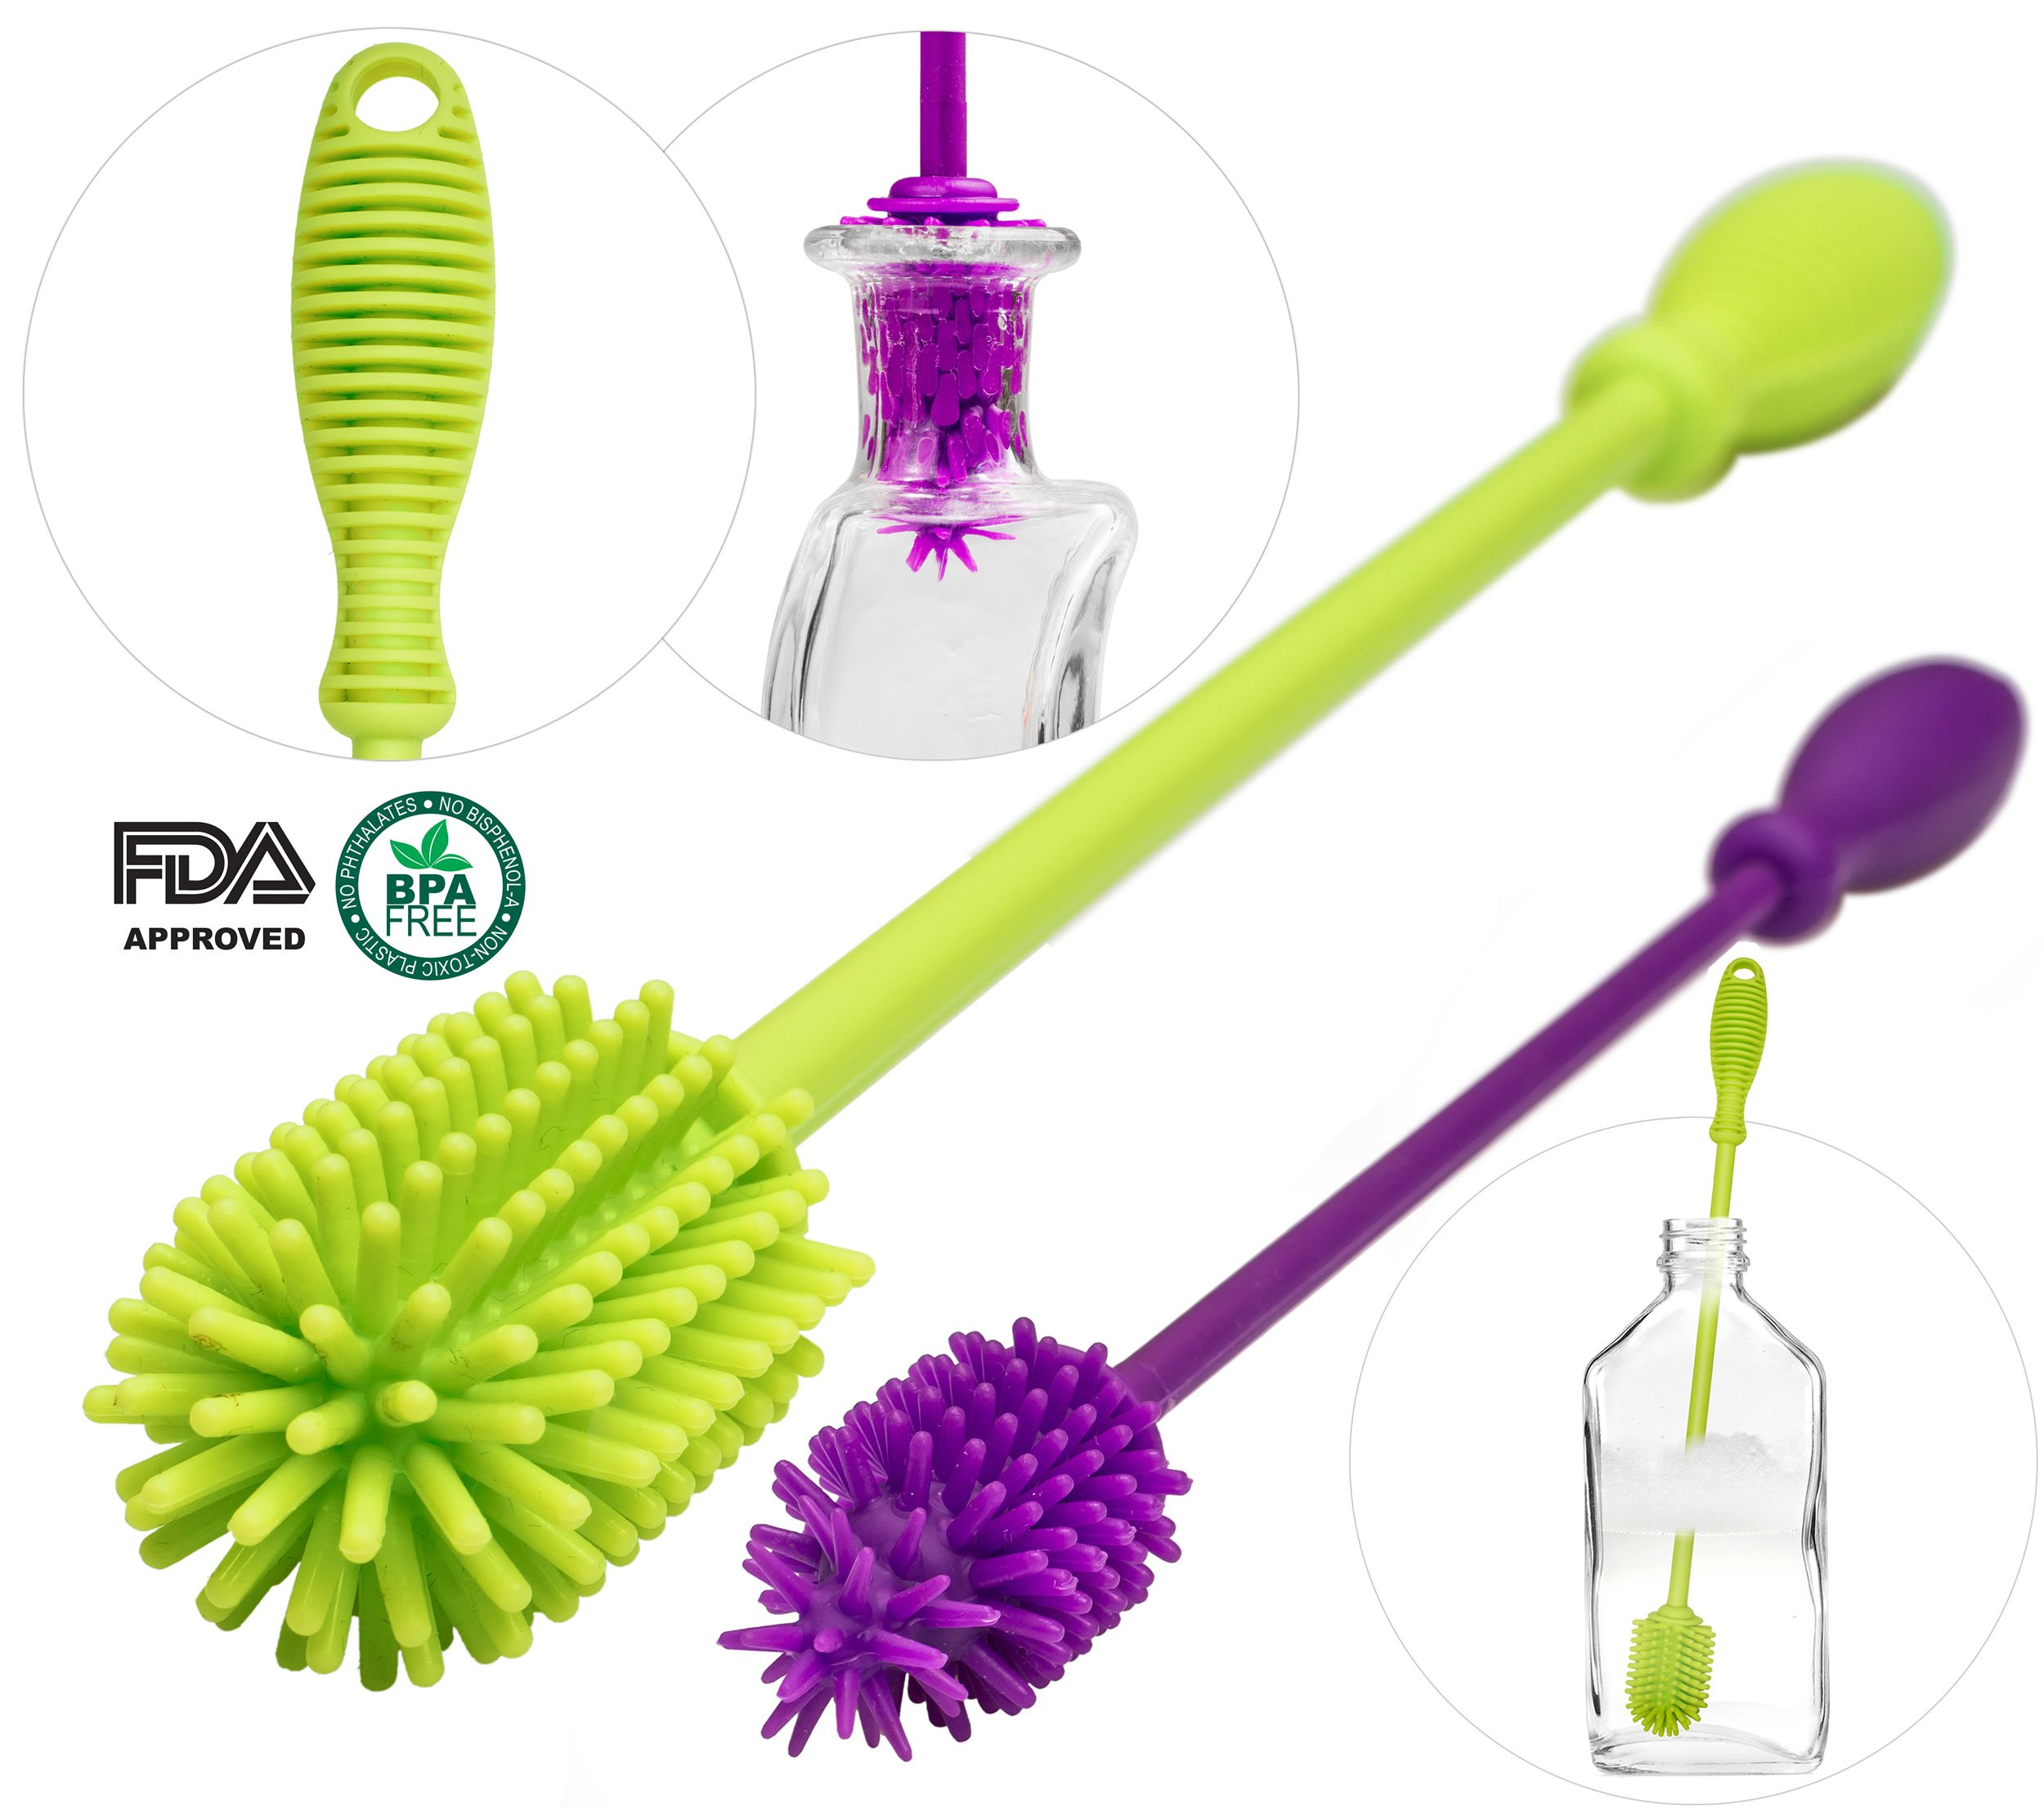 A-Brush 2 pcs Set Silicone Bottle Brushes BPA Free - Bottle Washer FDA Approved - Long Handle Antibacterial Baby Bottle & Nipple Brush Ideal for Glass & Plastic Water Bottles (Green/Purple Set of 2)